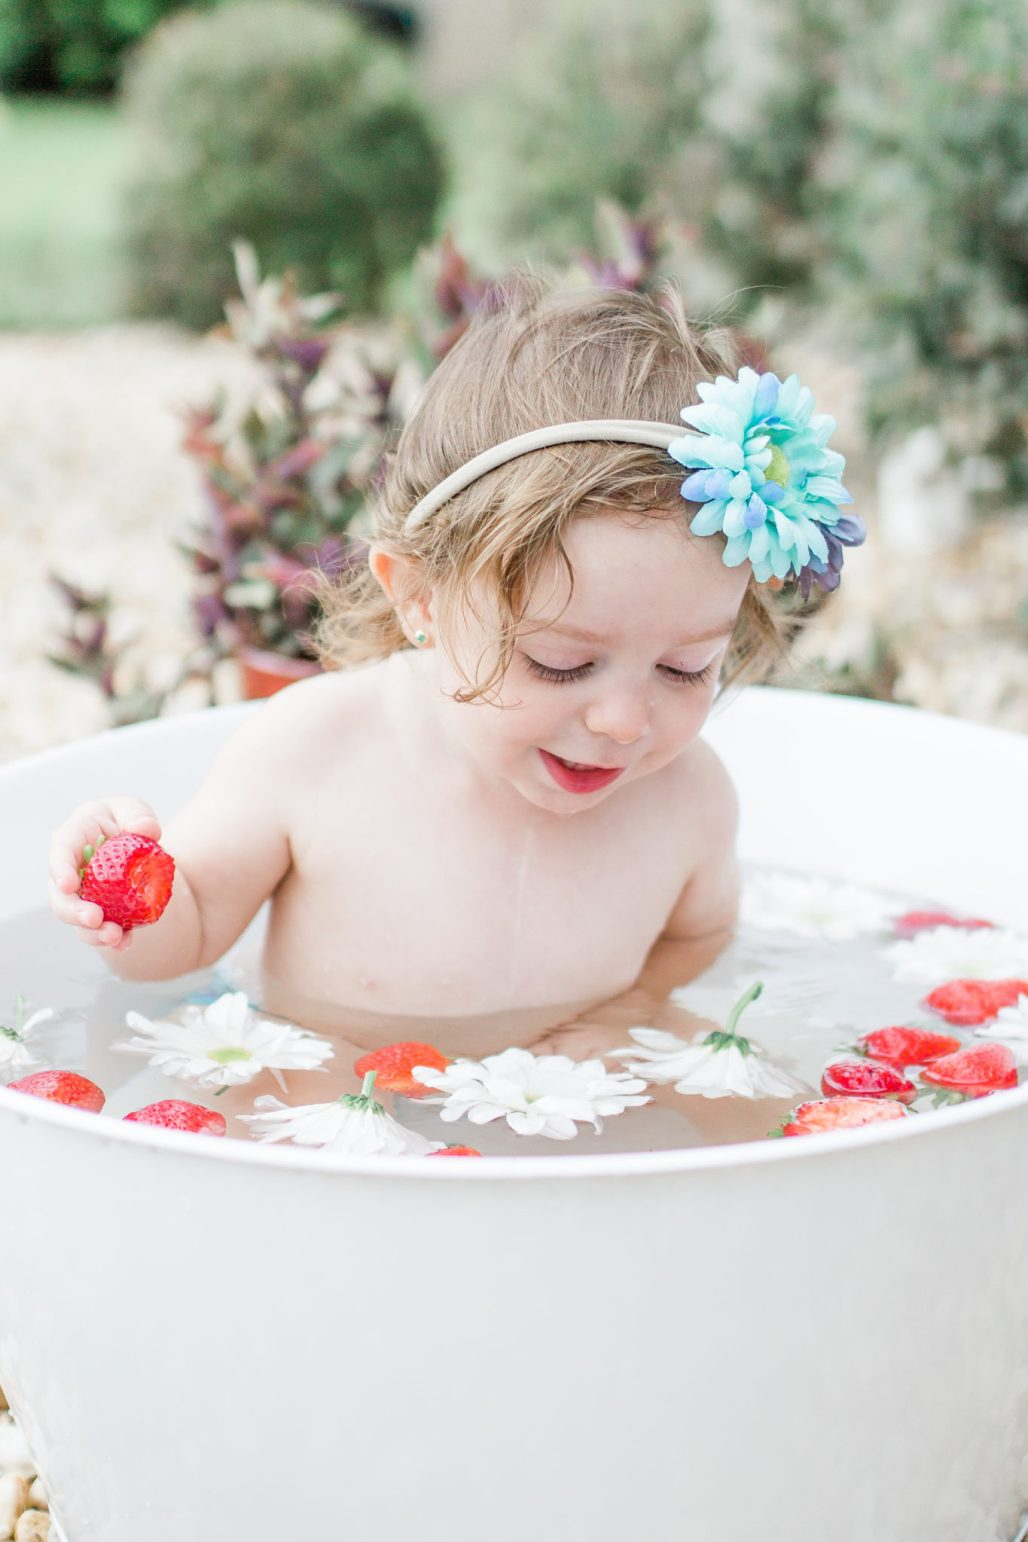 Outdoor citrus session, outdoor fruit bath, outdoor photoshoot, kids bath session photography, Tampa photographer, fresh berry photoshoot